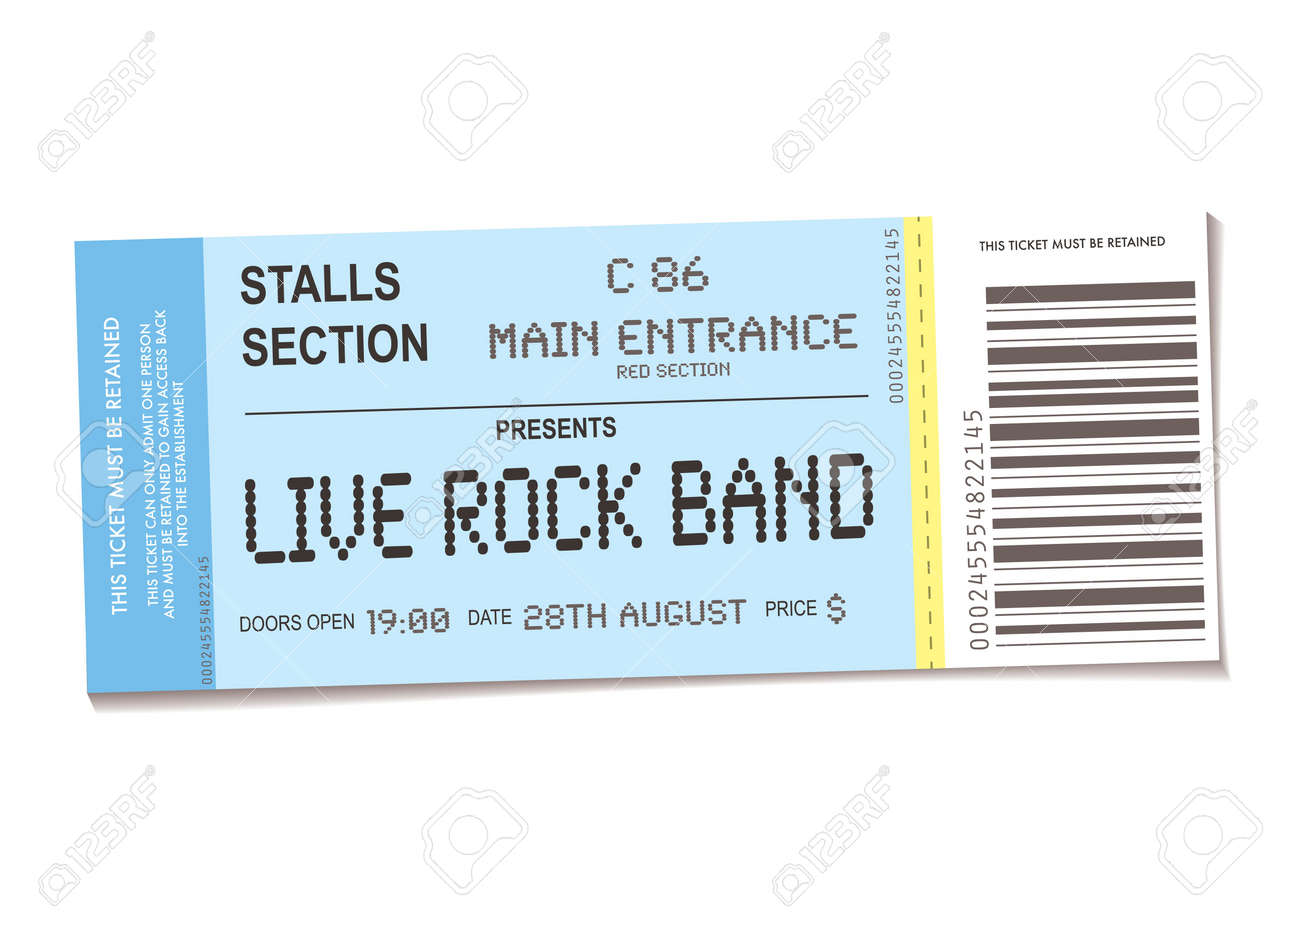 sample concert ticket with realistic look and date information - 7331383